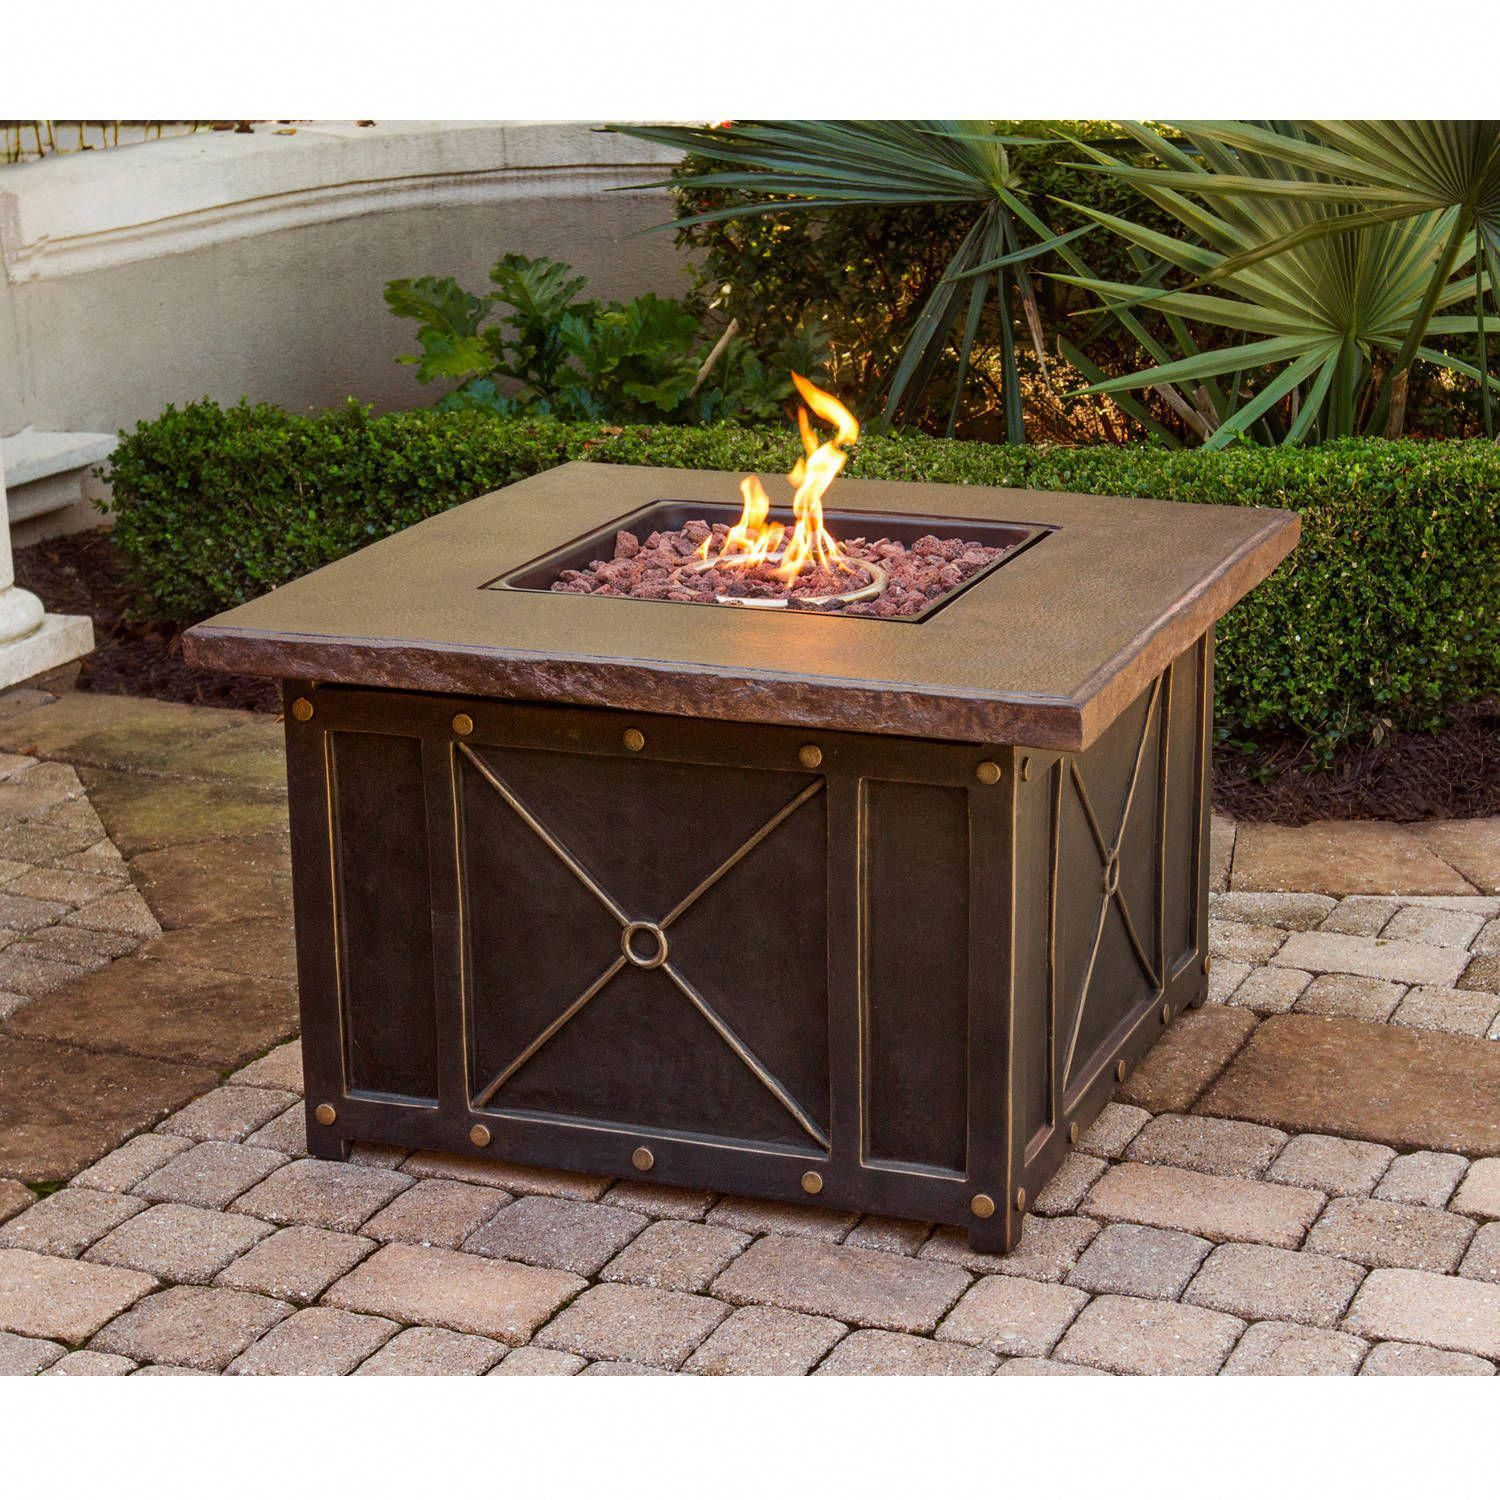 Patio furniture sets clearance 4pc gas fire pit heater table sofa rocking chairs ebay pergola10x20